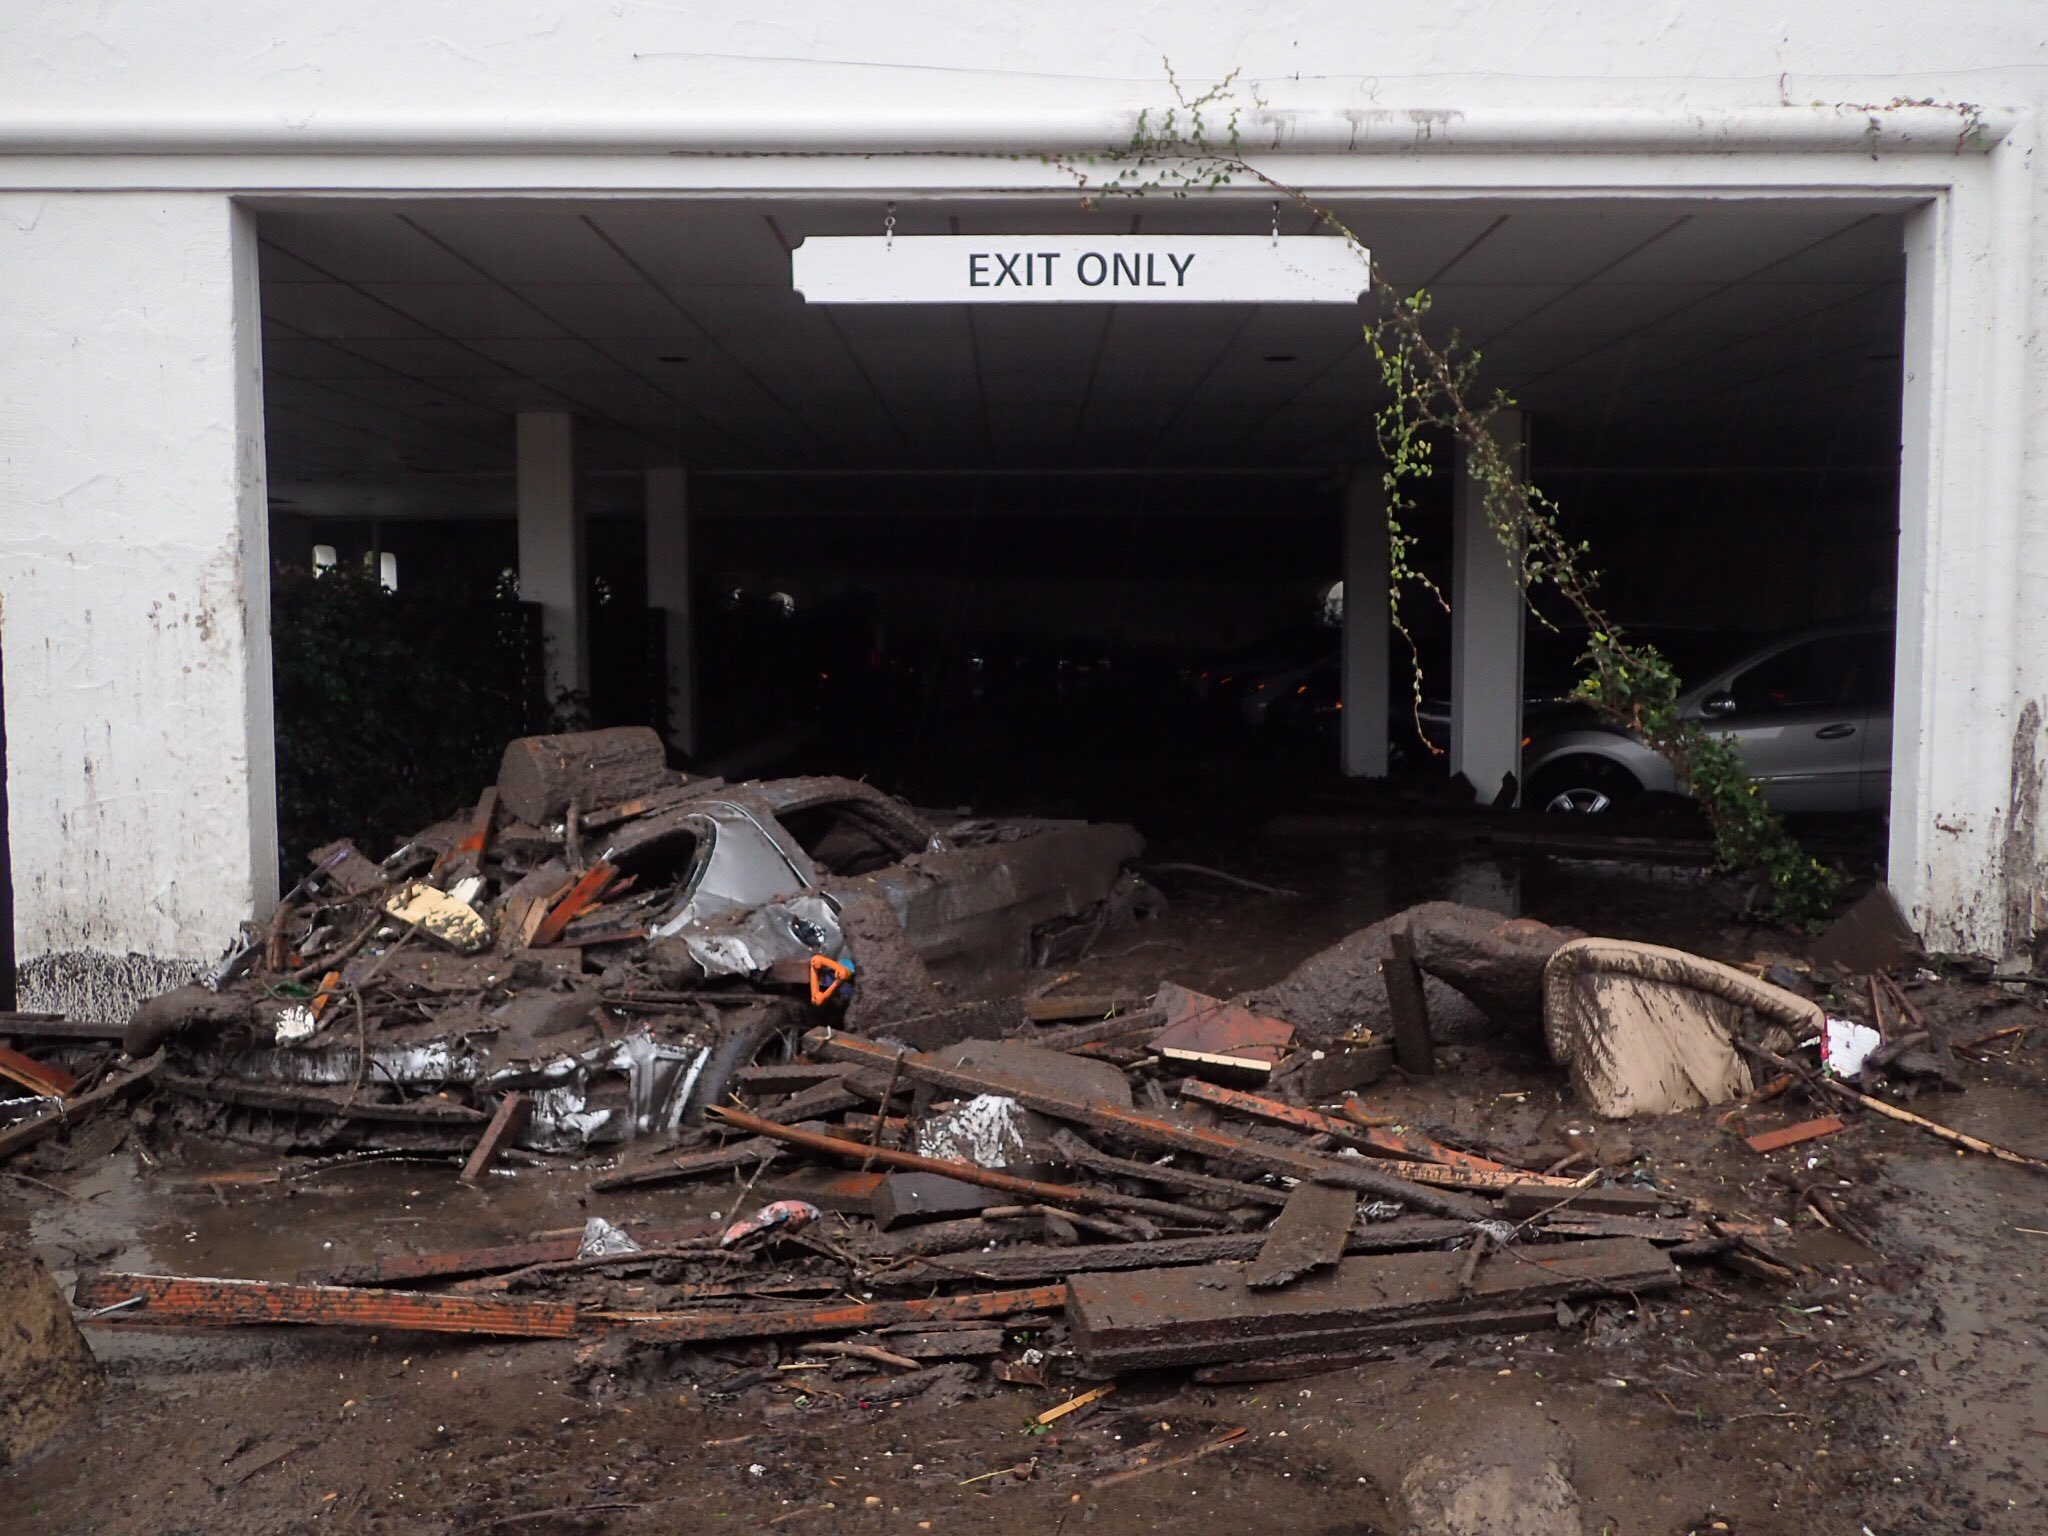 Damaged vehicles carried by mud flow and debris at the exit of the parking garage to the Montecito Inn (Photo: Mike Eliason / Santa Barbara County Fire)